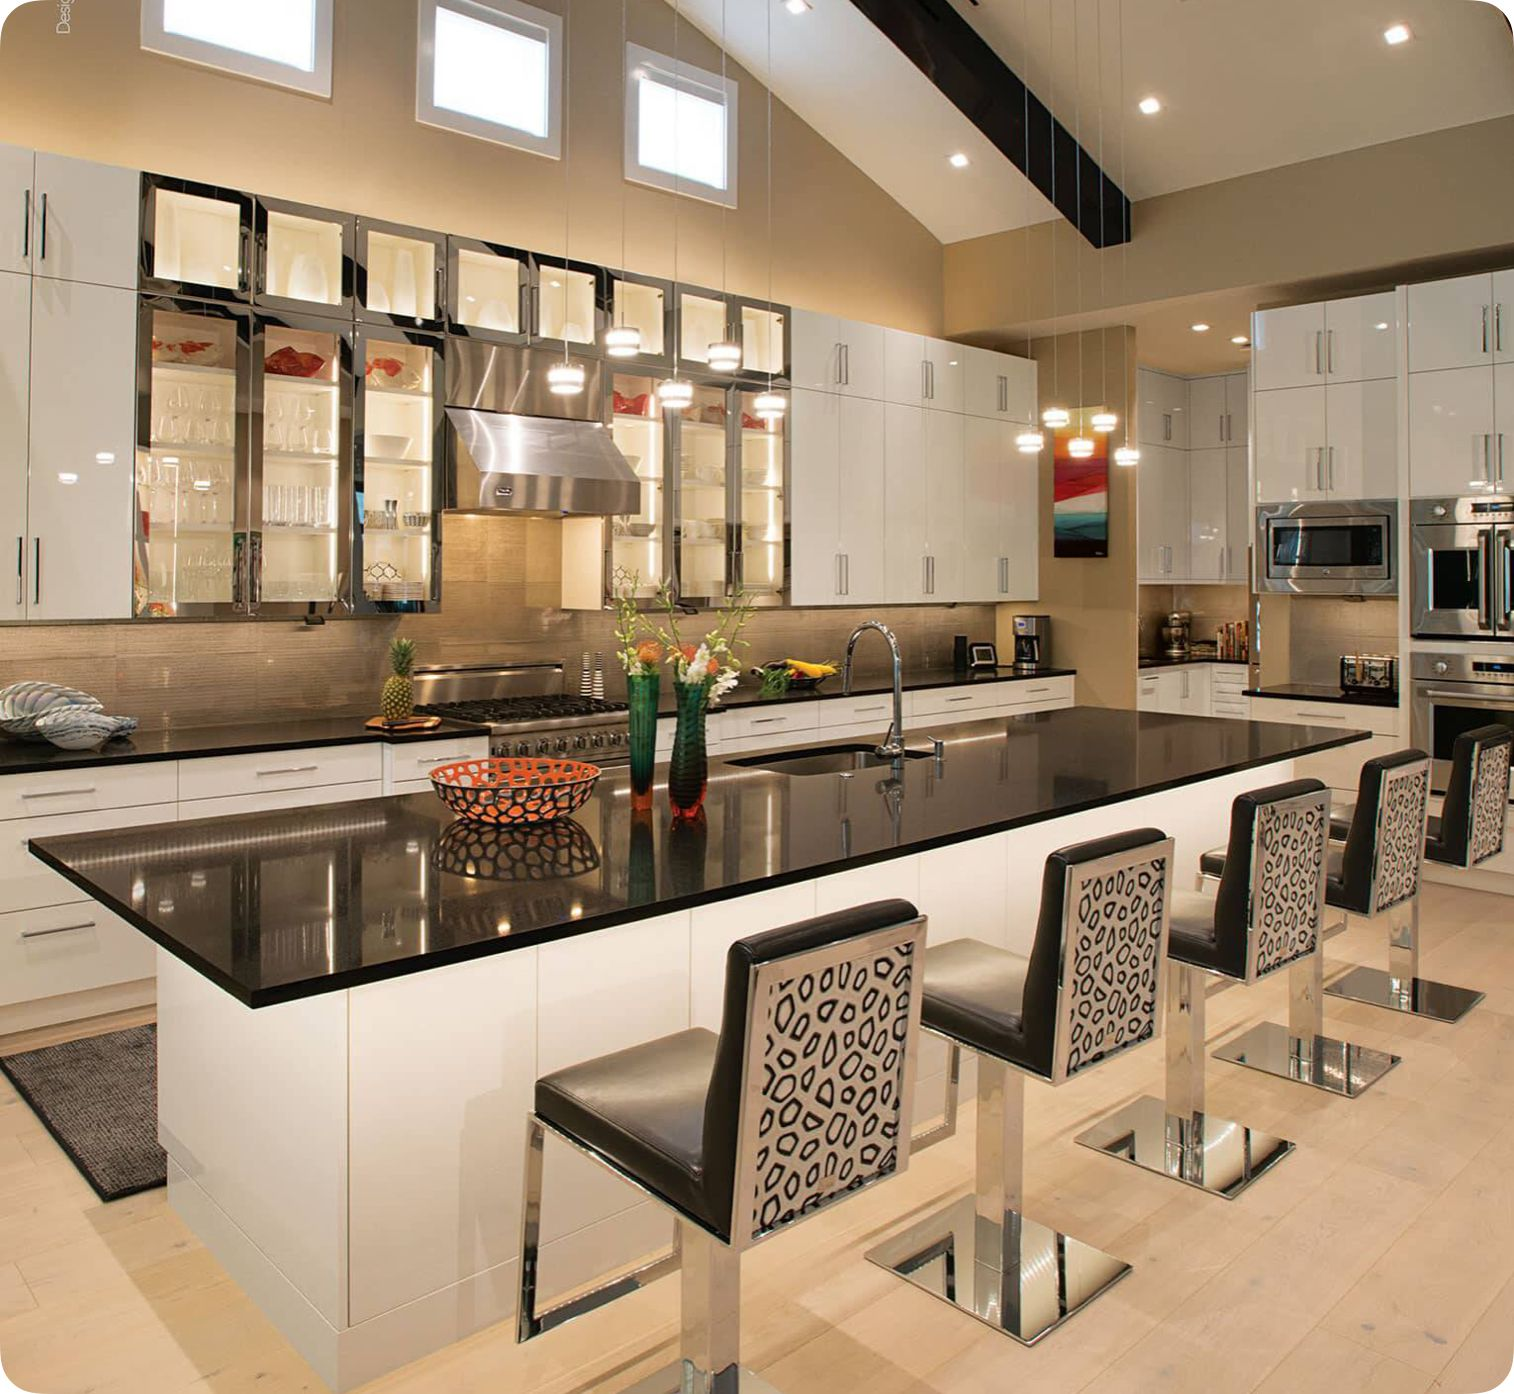 Ad hbx woodmode house interiors beautiful homes kitchens of beauty nice houses also pinterest rh in